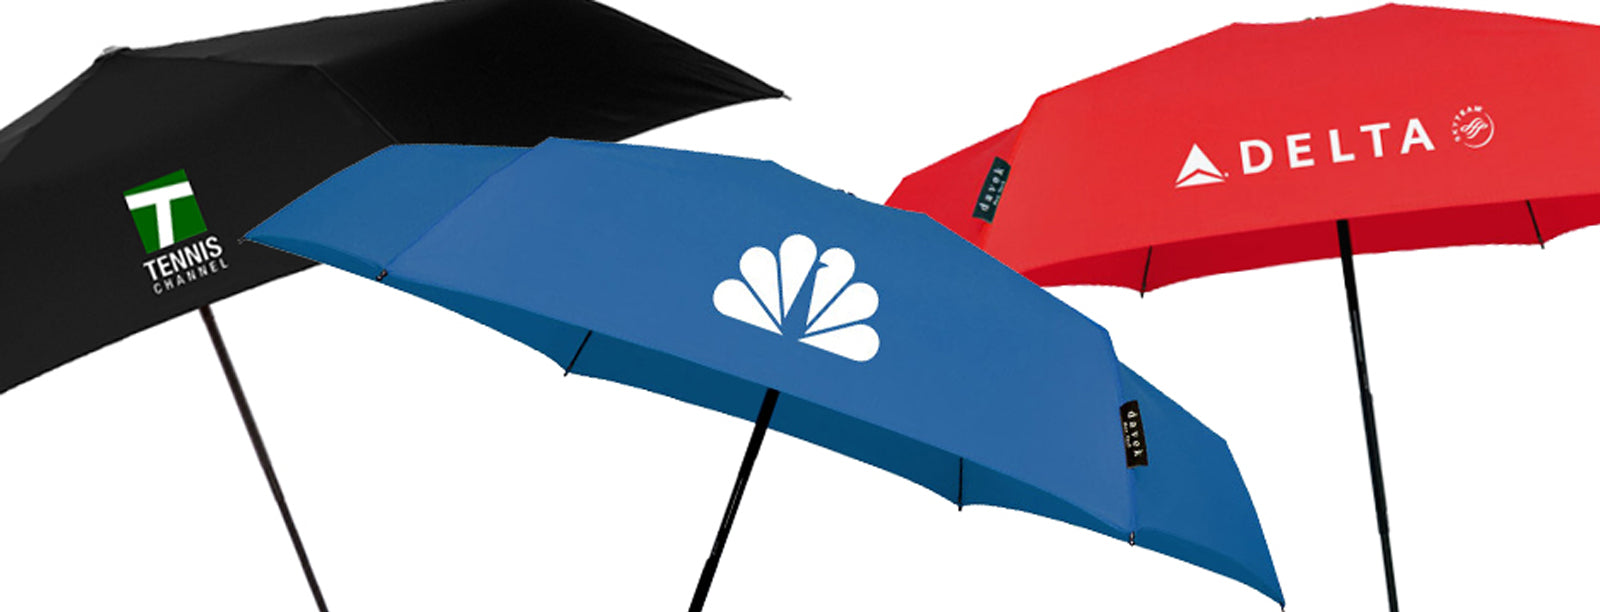 High End Corporate Umbrella Gifts